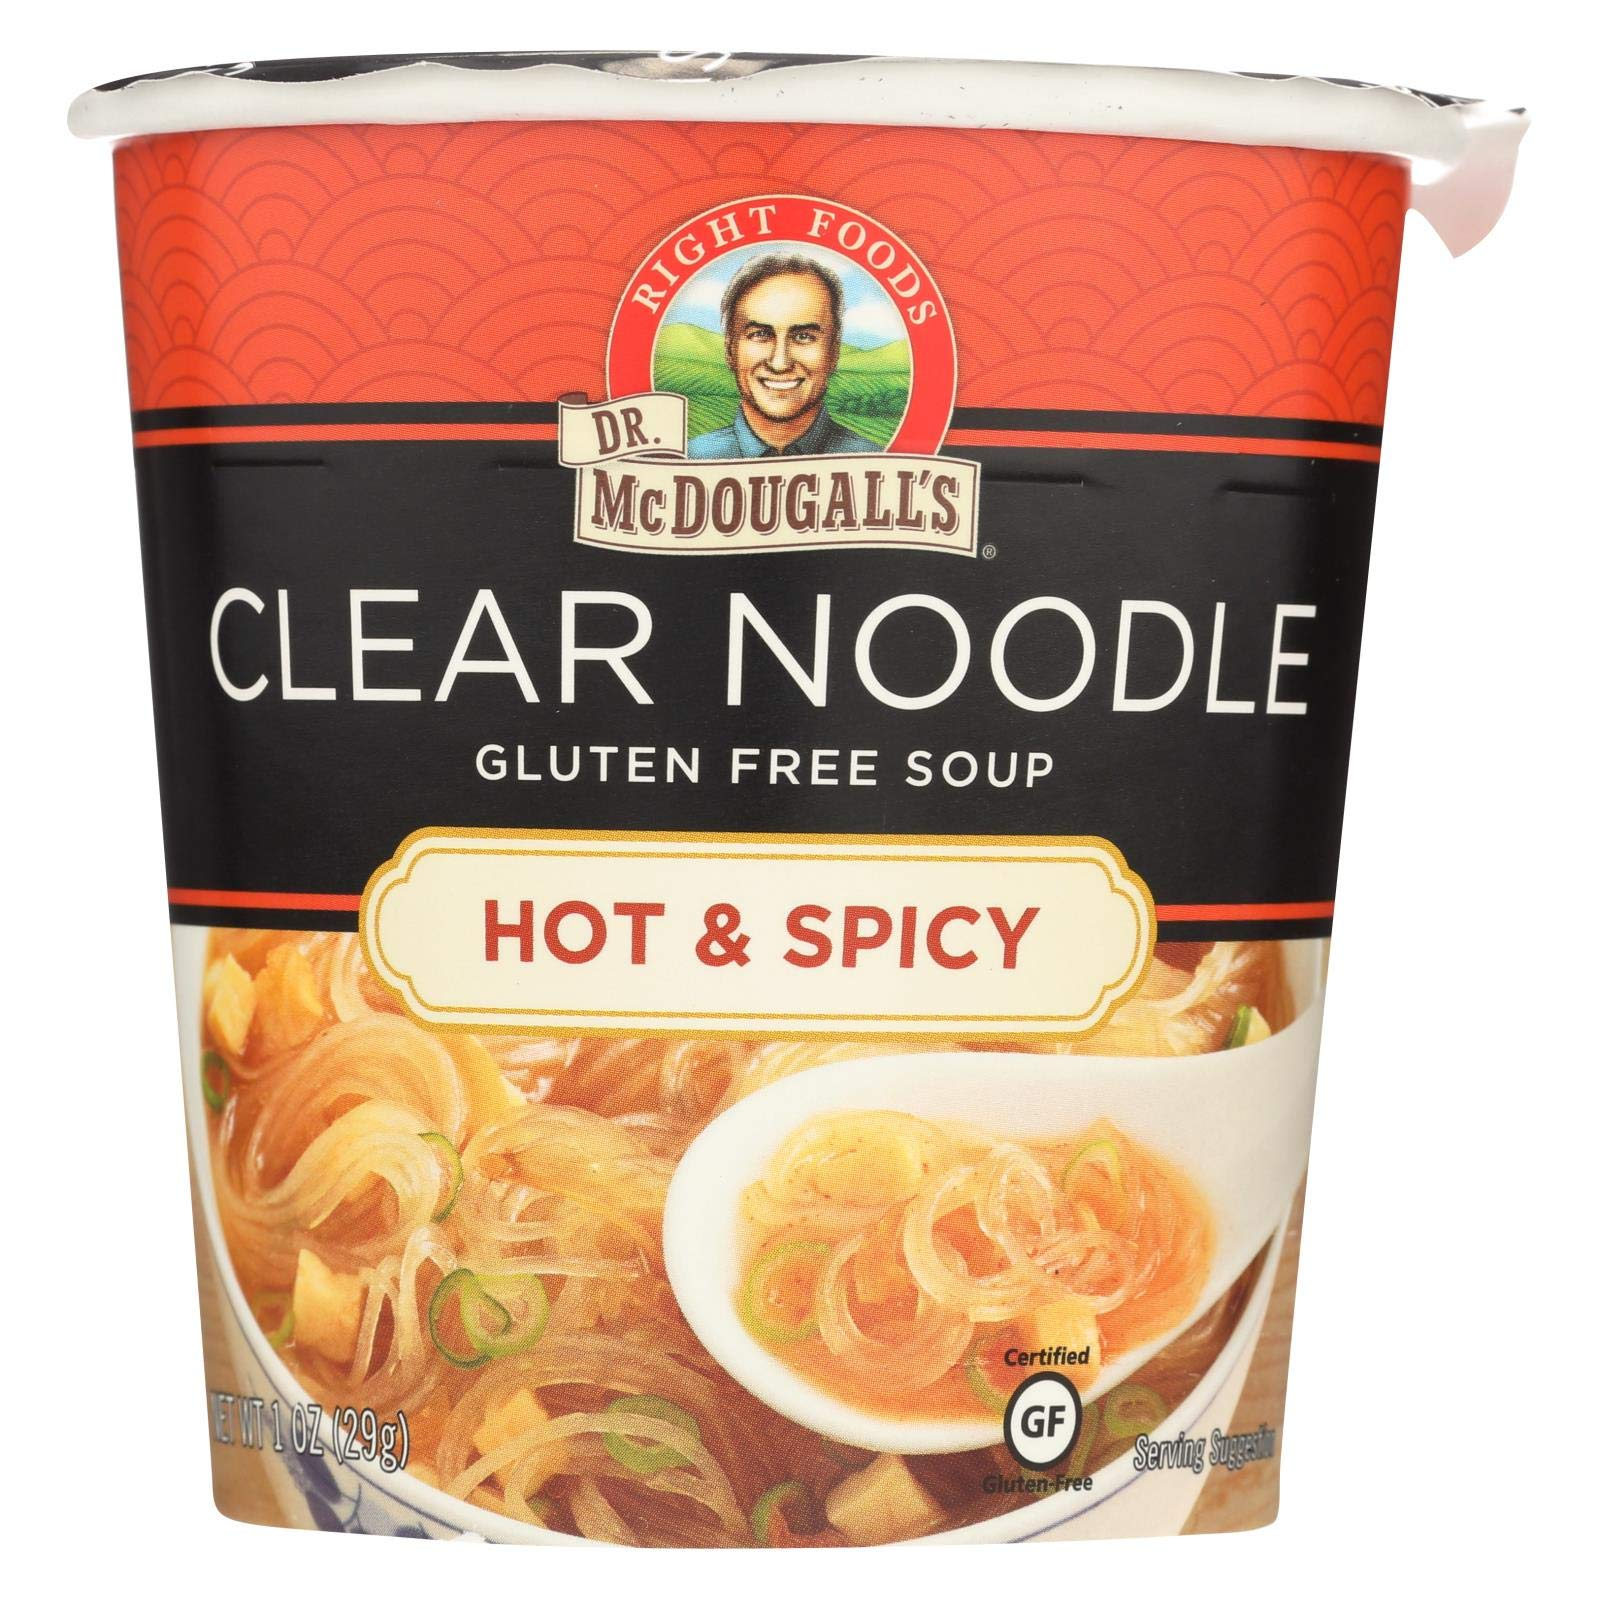 Dr McDougalls Hot and Spicy Clear Noodle Asian Soup, 1 Ounce - 6 per case., [wellica]